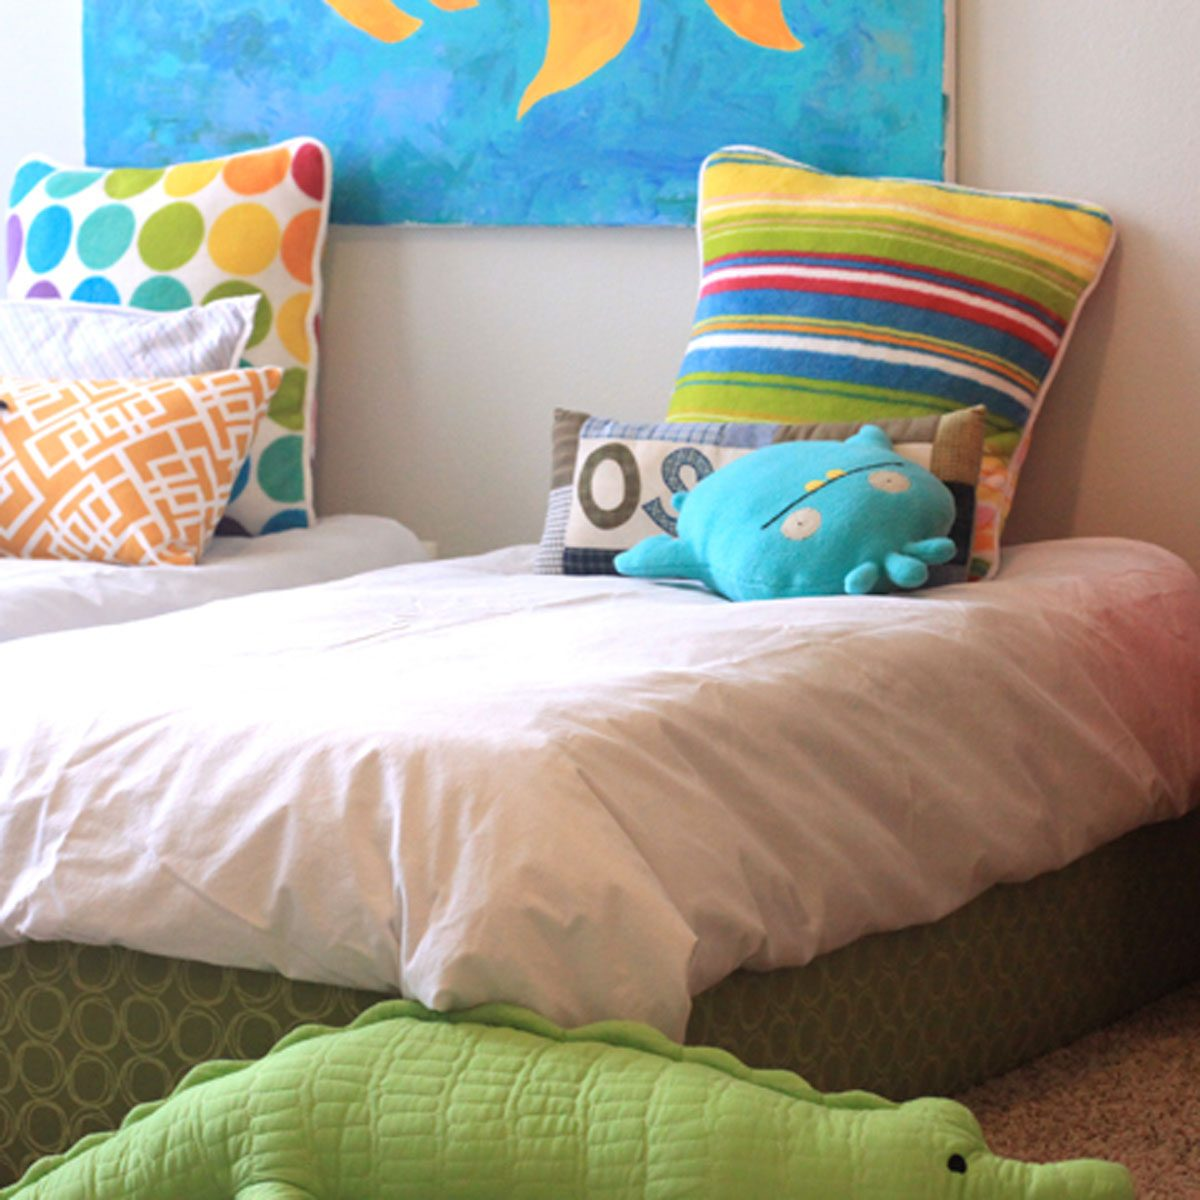 dfh2_toddlerbed